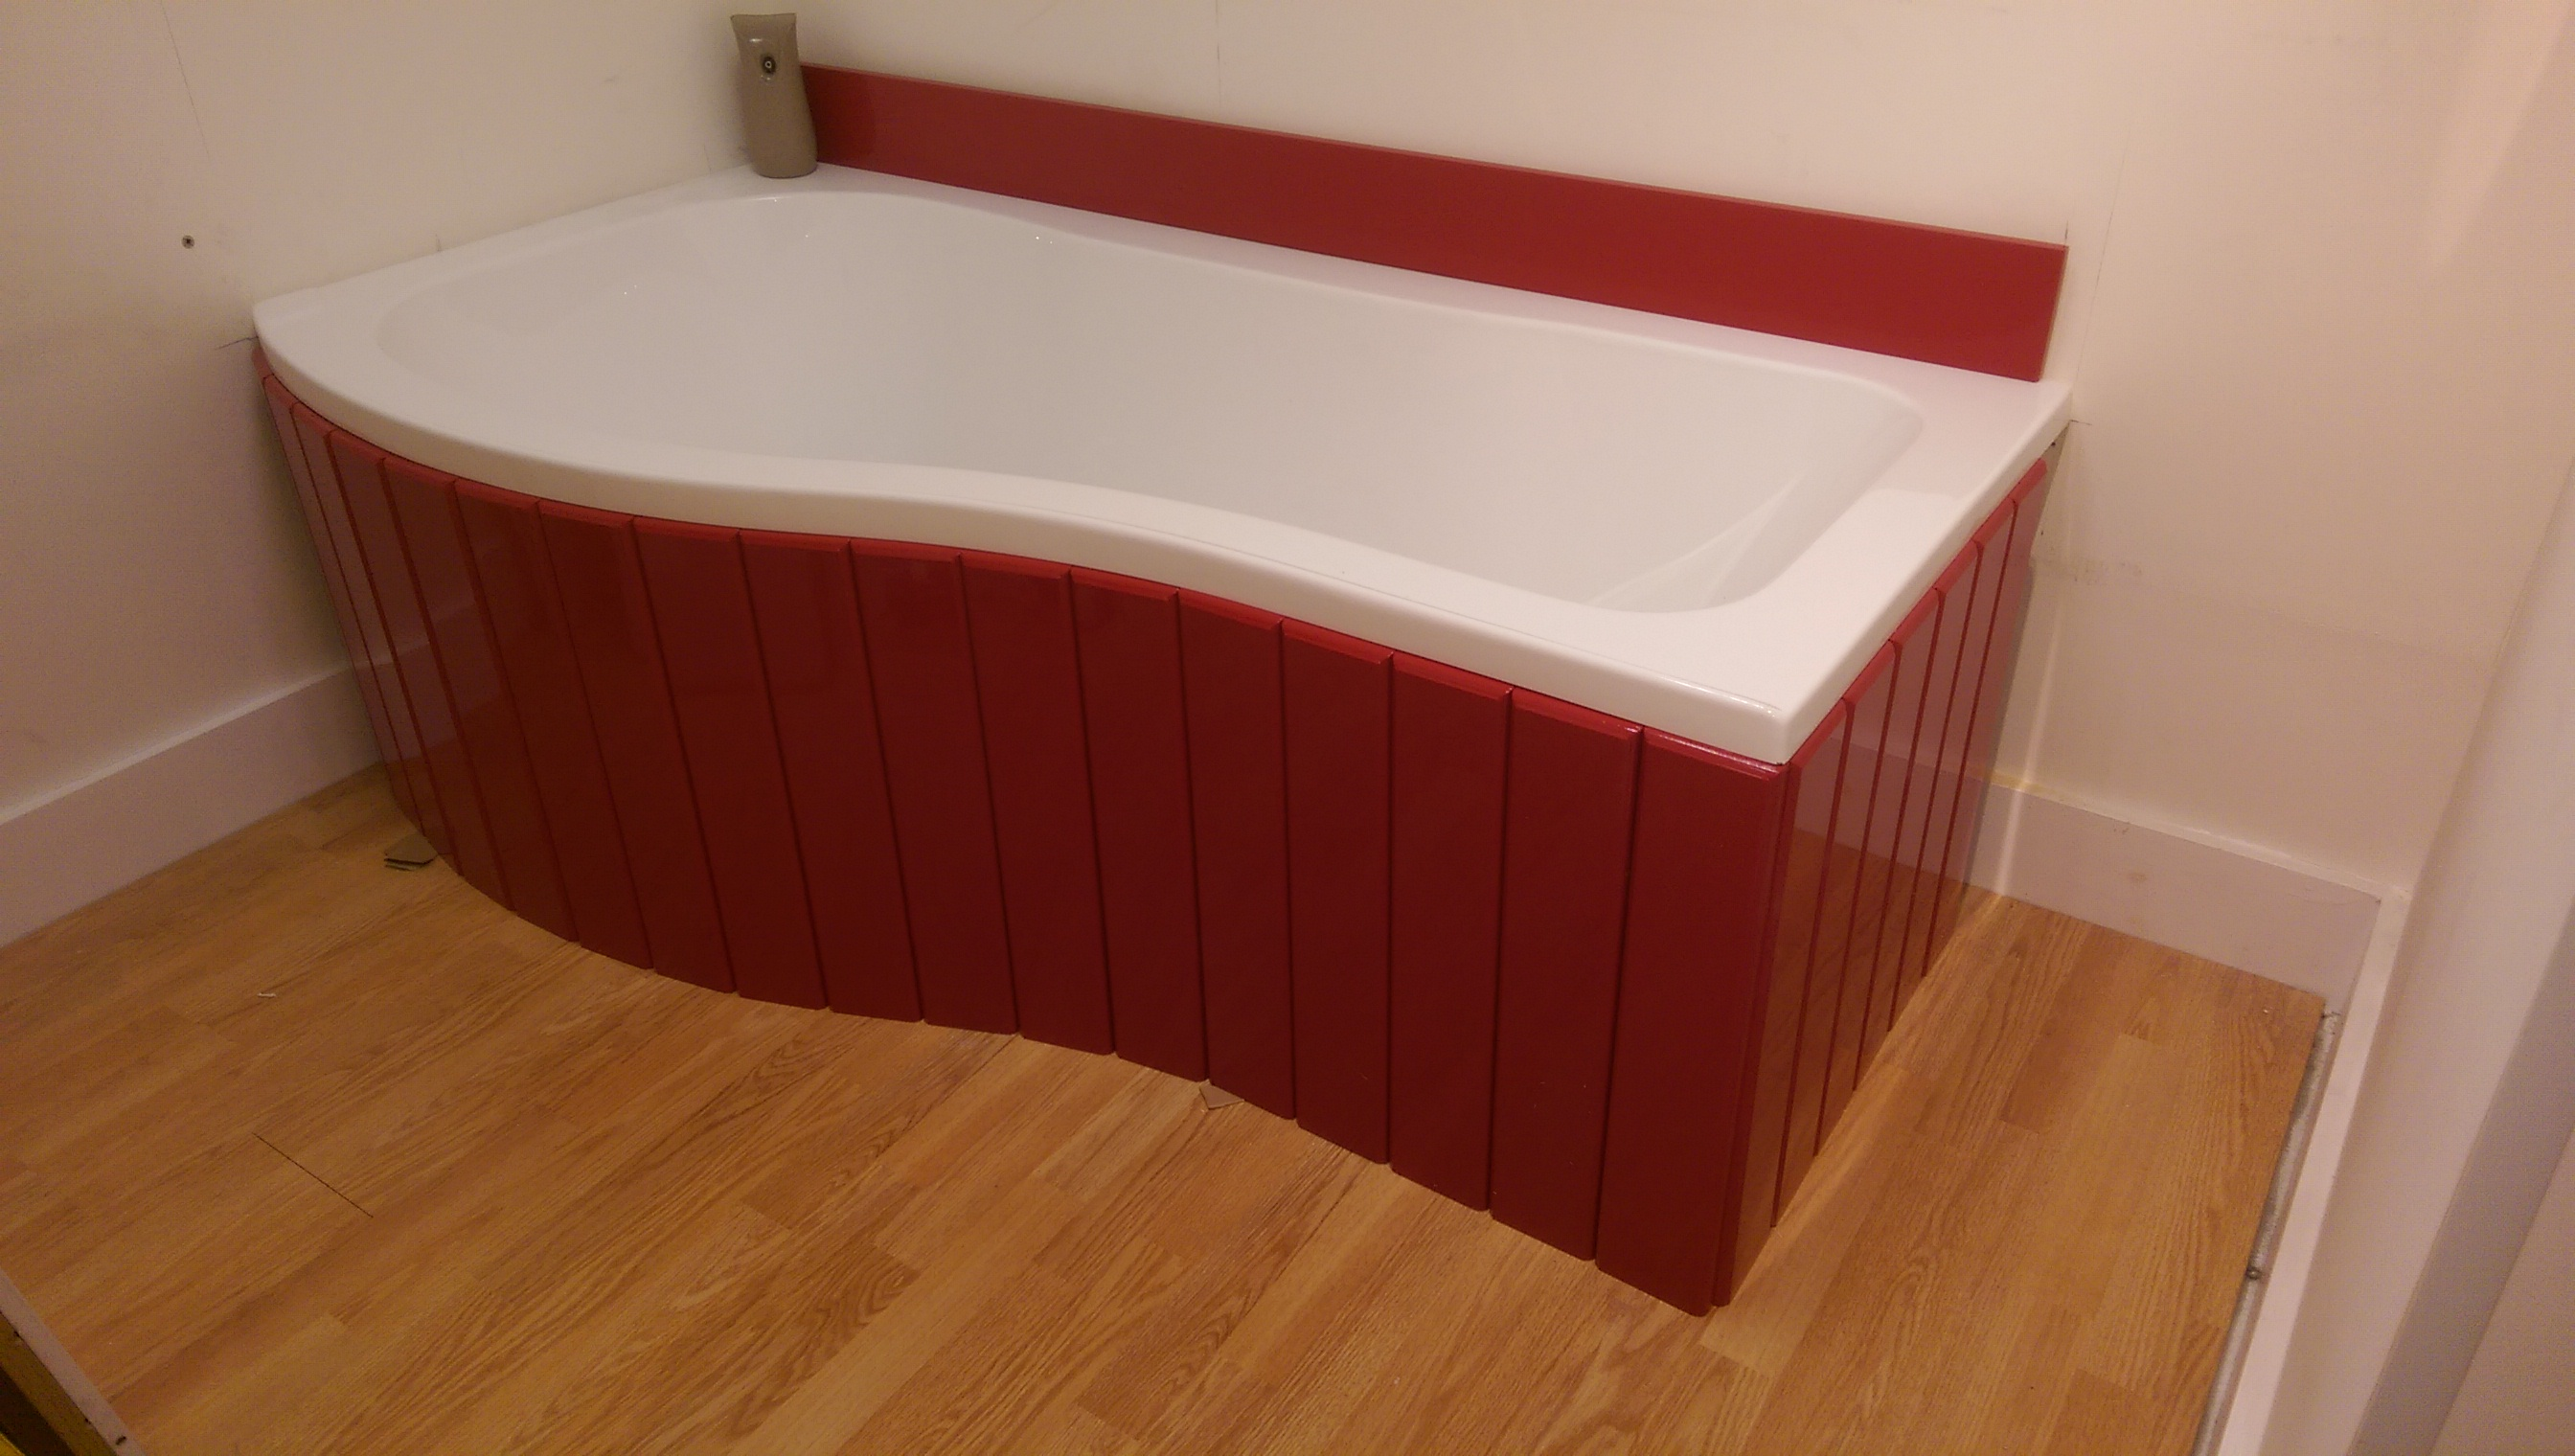 p shaped bath panel red.jpg